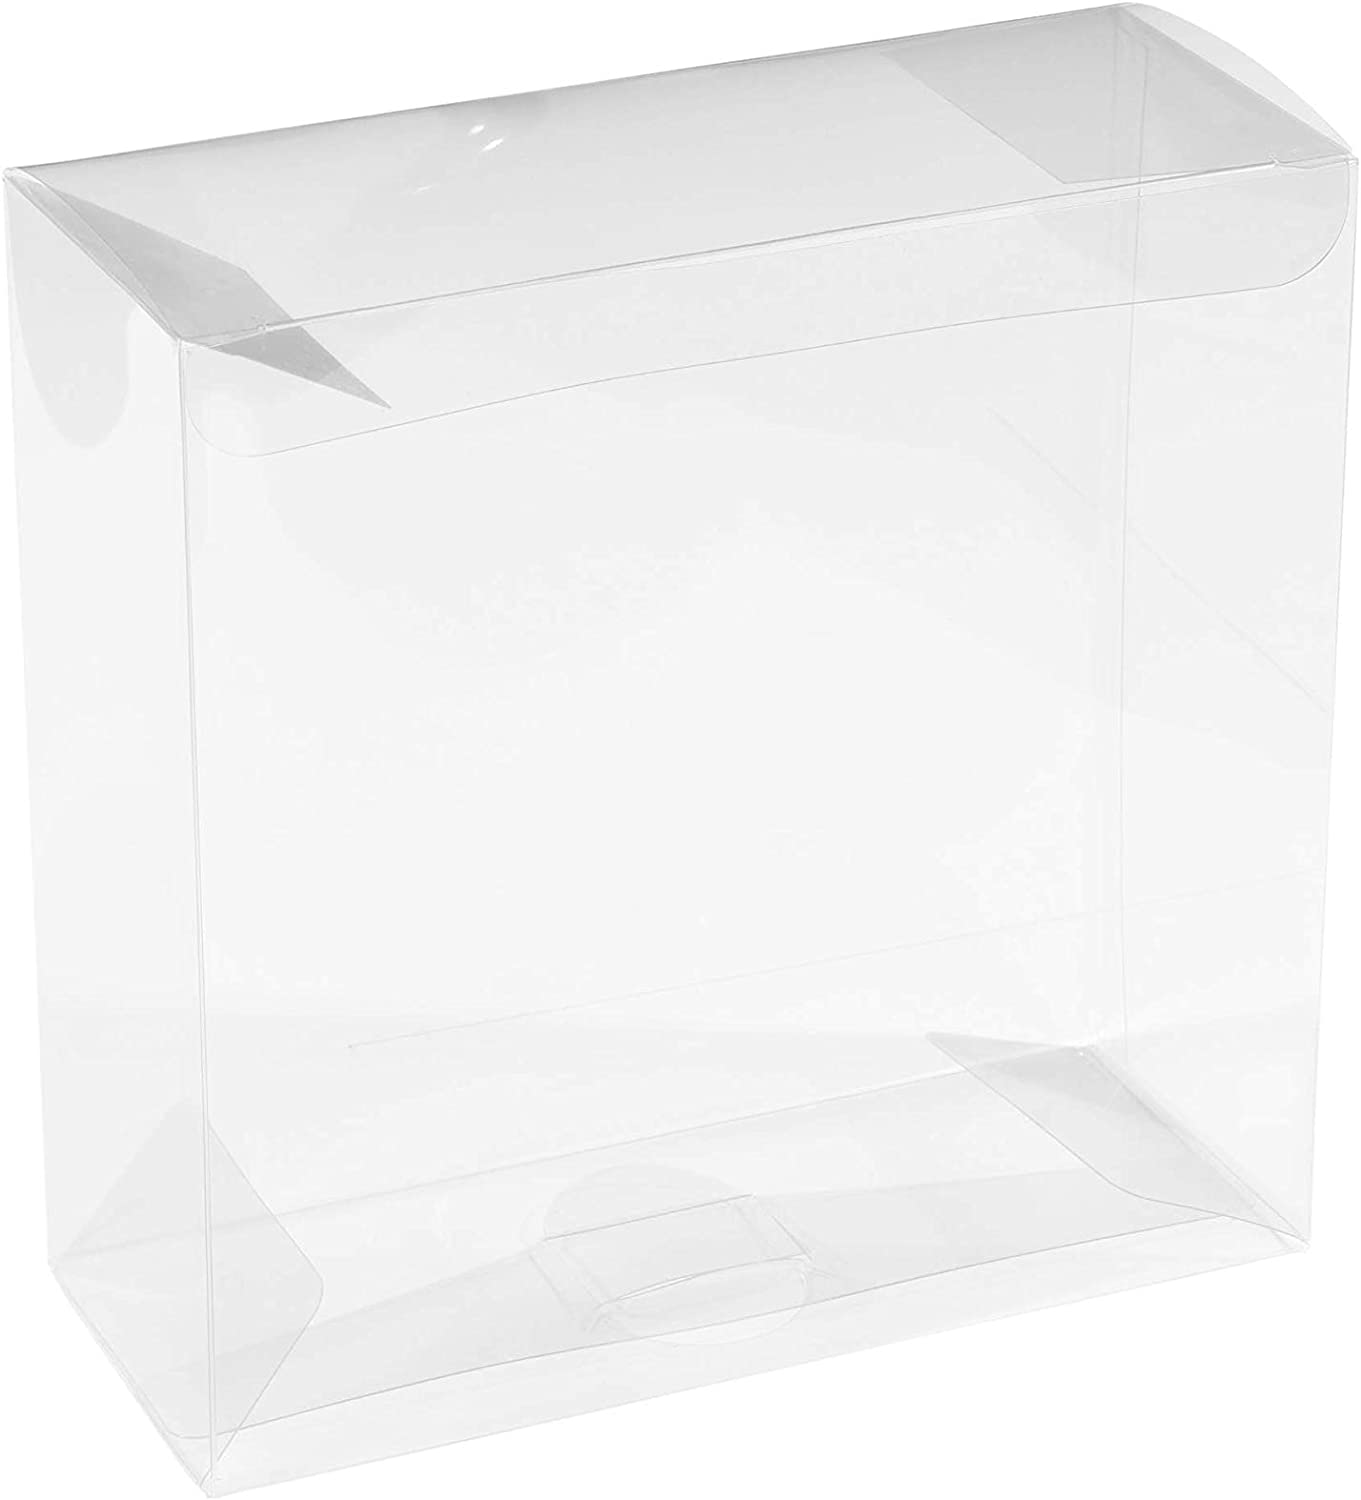 Clear PET Plastic Storage Boxes – Transparent Gift Boxes, Empty Containers Packing Box for Party Favors Ideal for Cookies, Ornament, Gifts, Wedding, Birthday and Parties 6